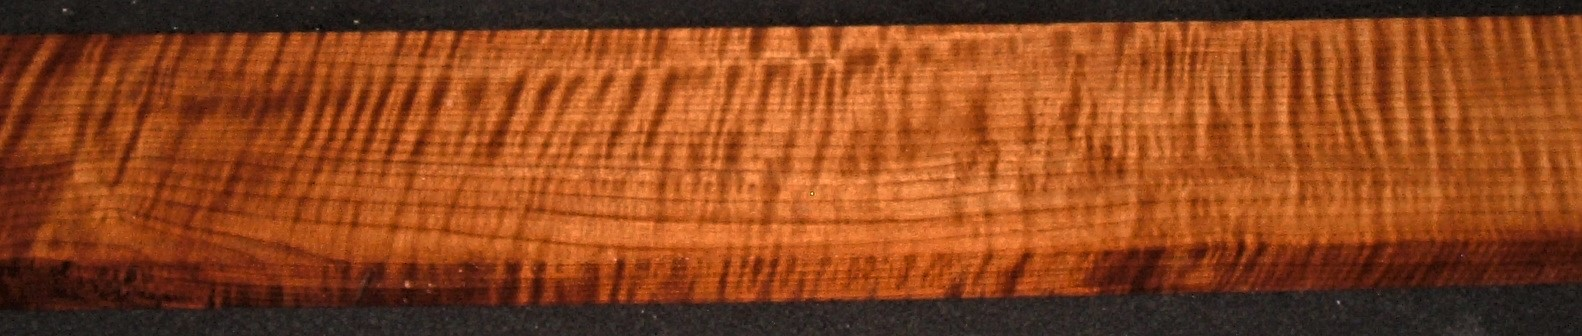 QRM2011-367JK, 15/16x4-7/8x47, Quartersawn Roasted Curly Maple